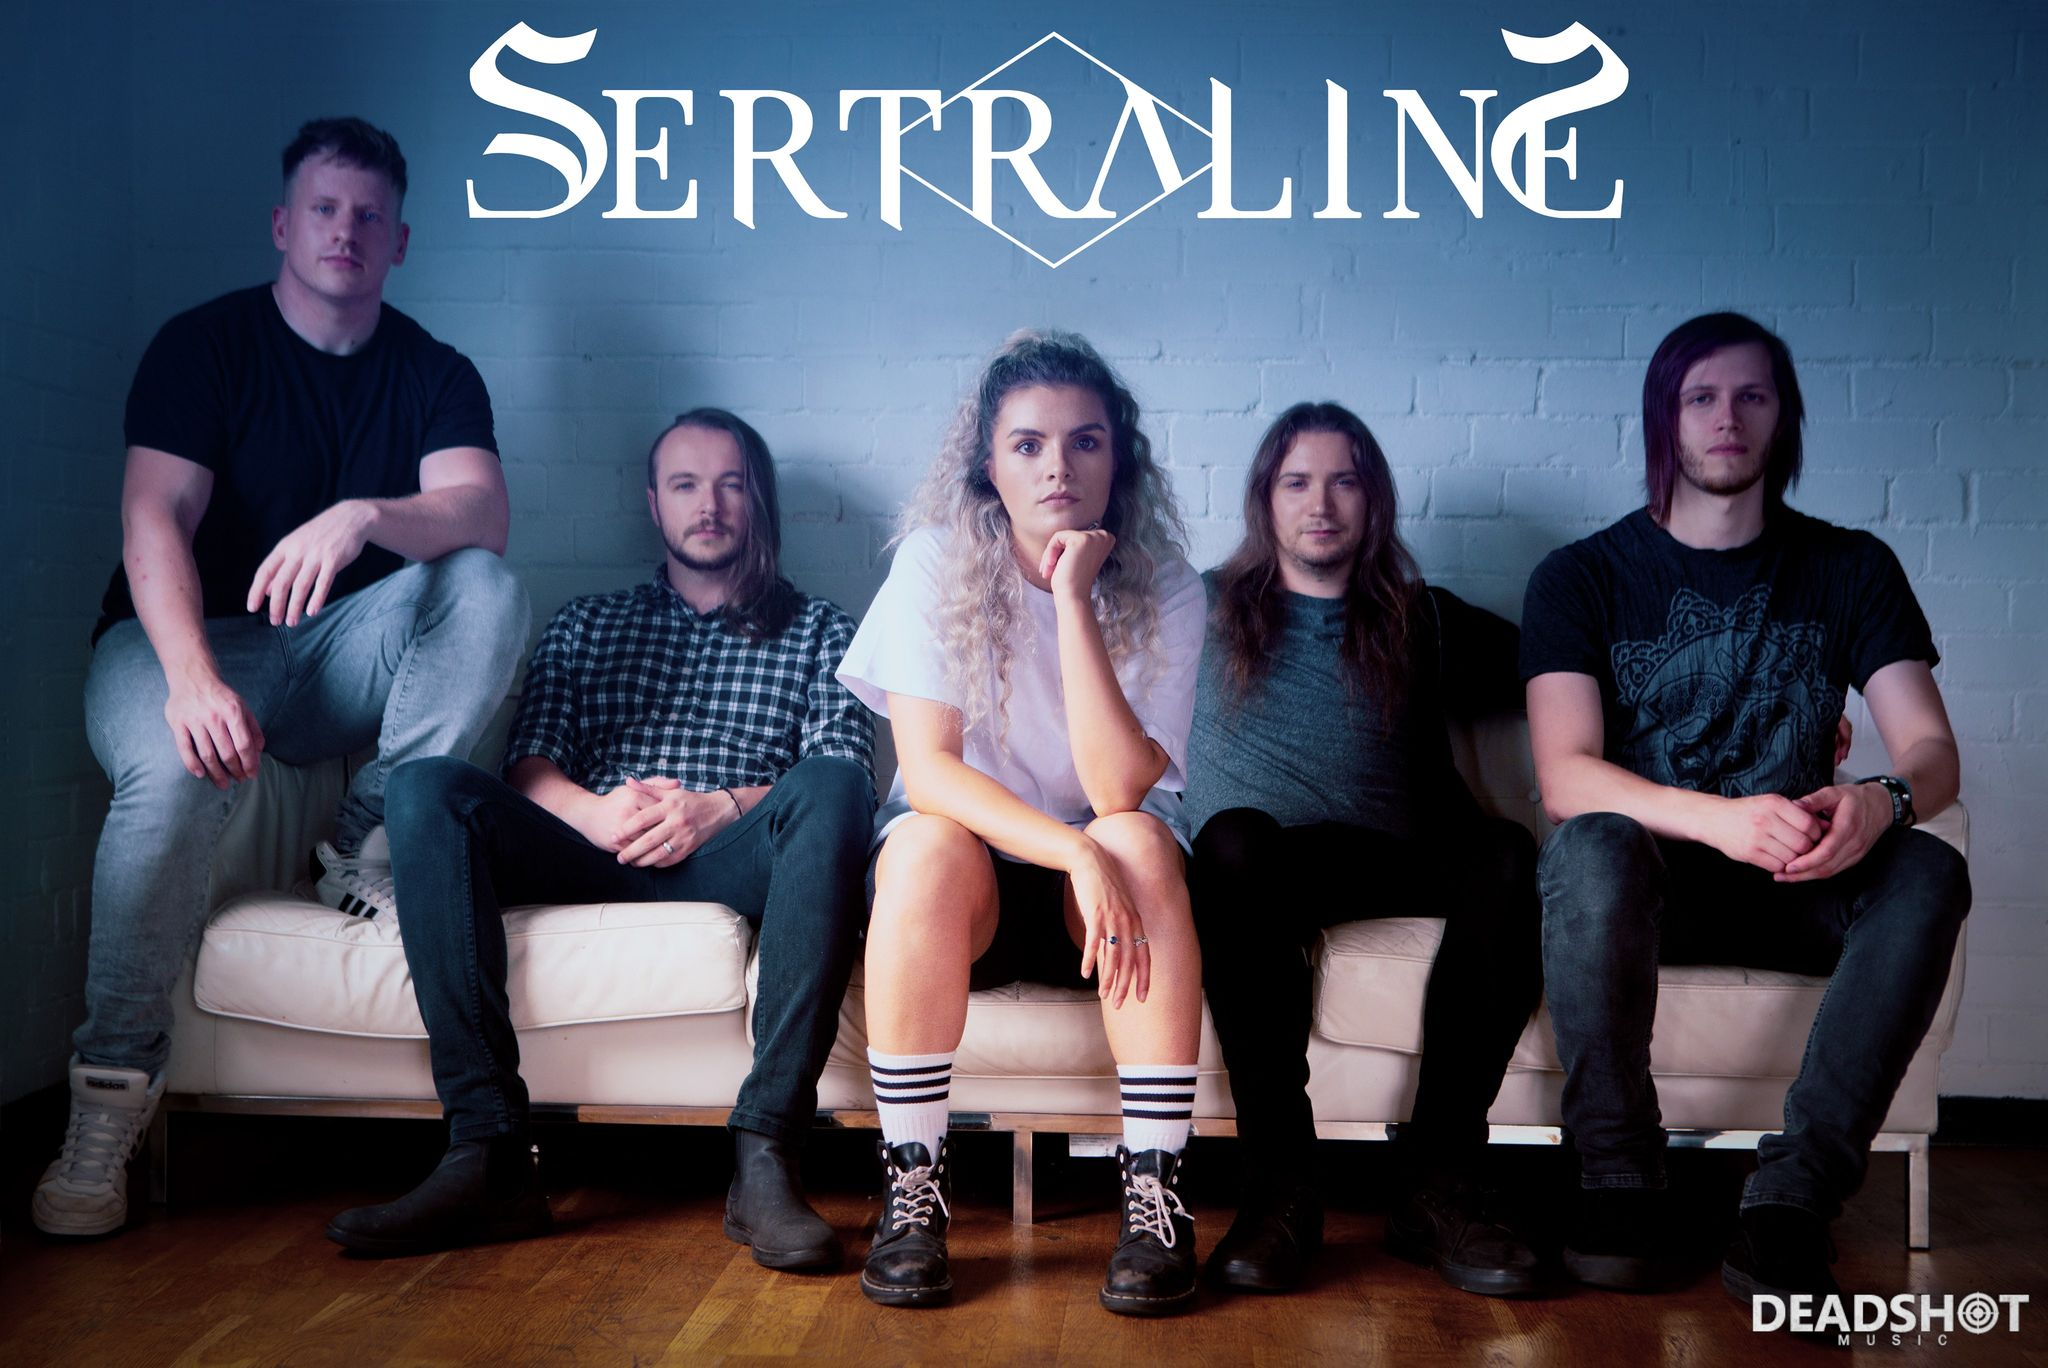 Sertraline - Deadshot Music